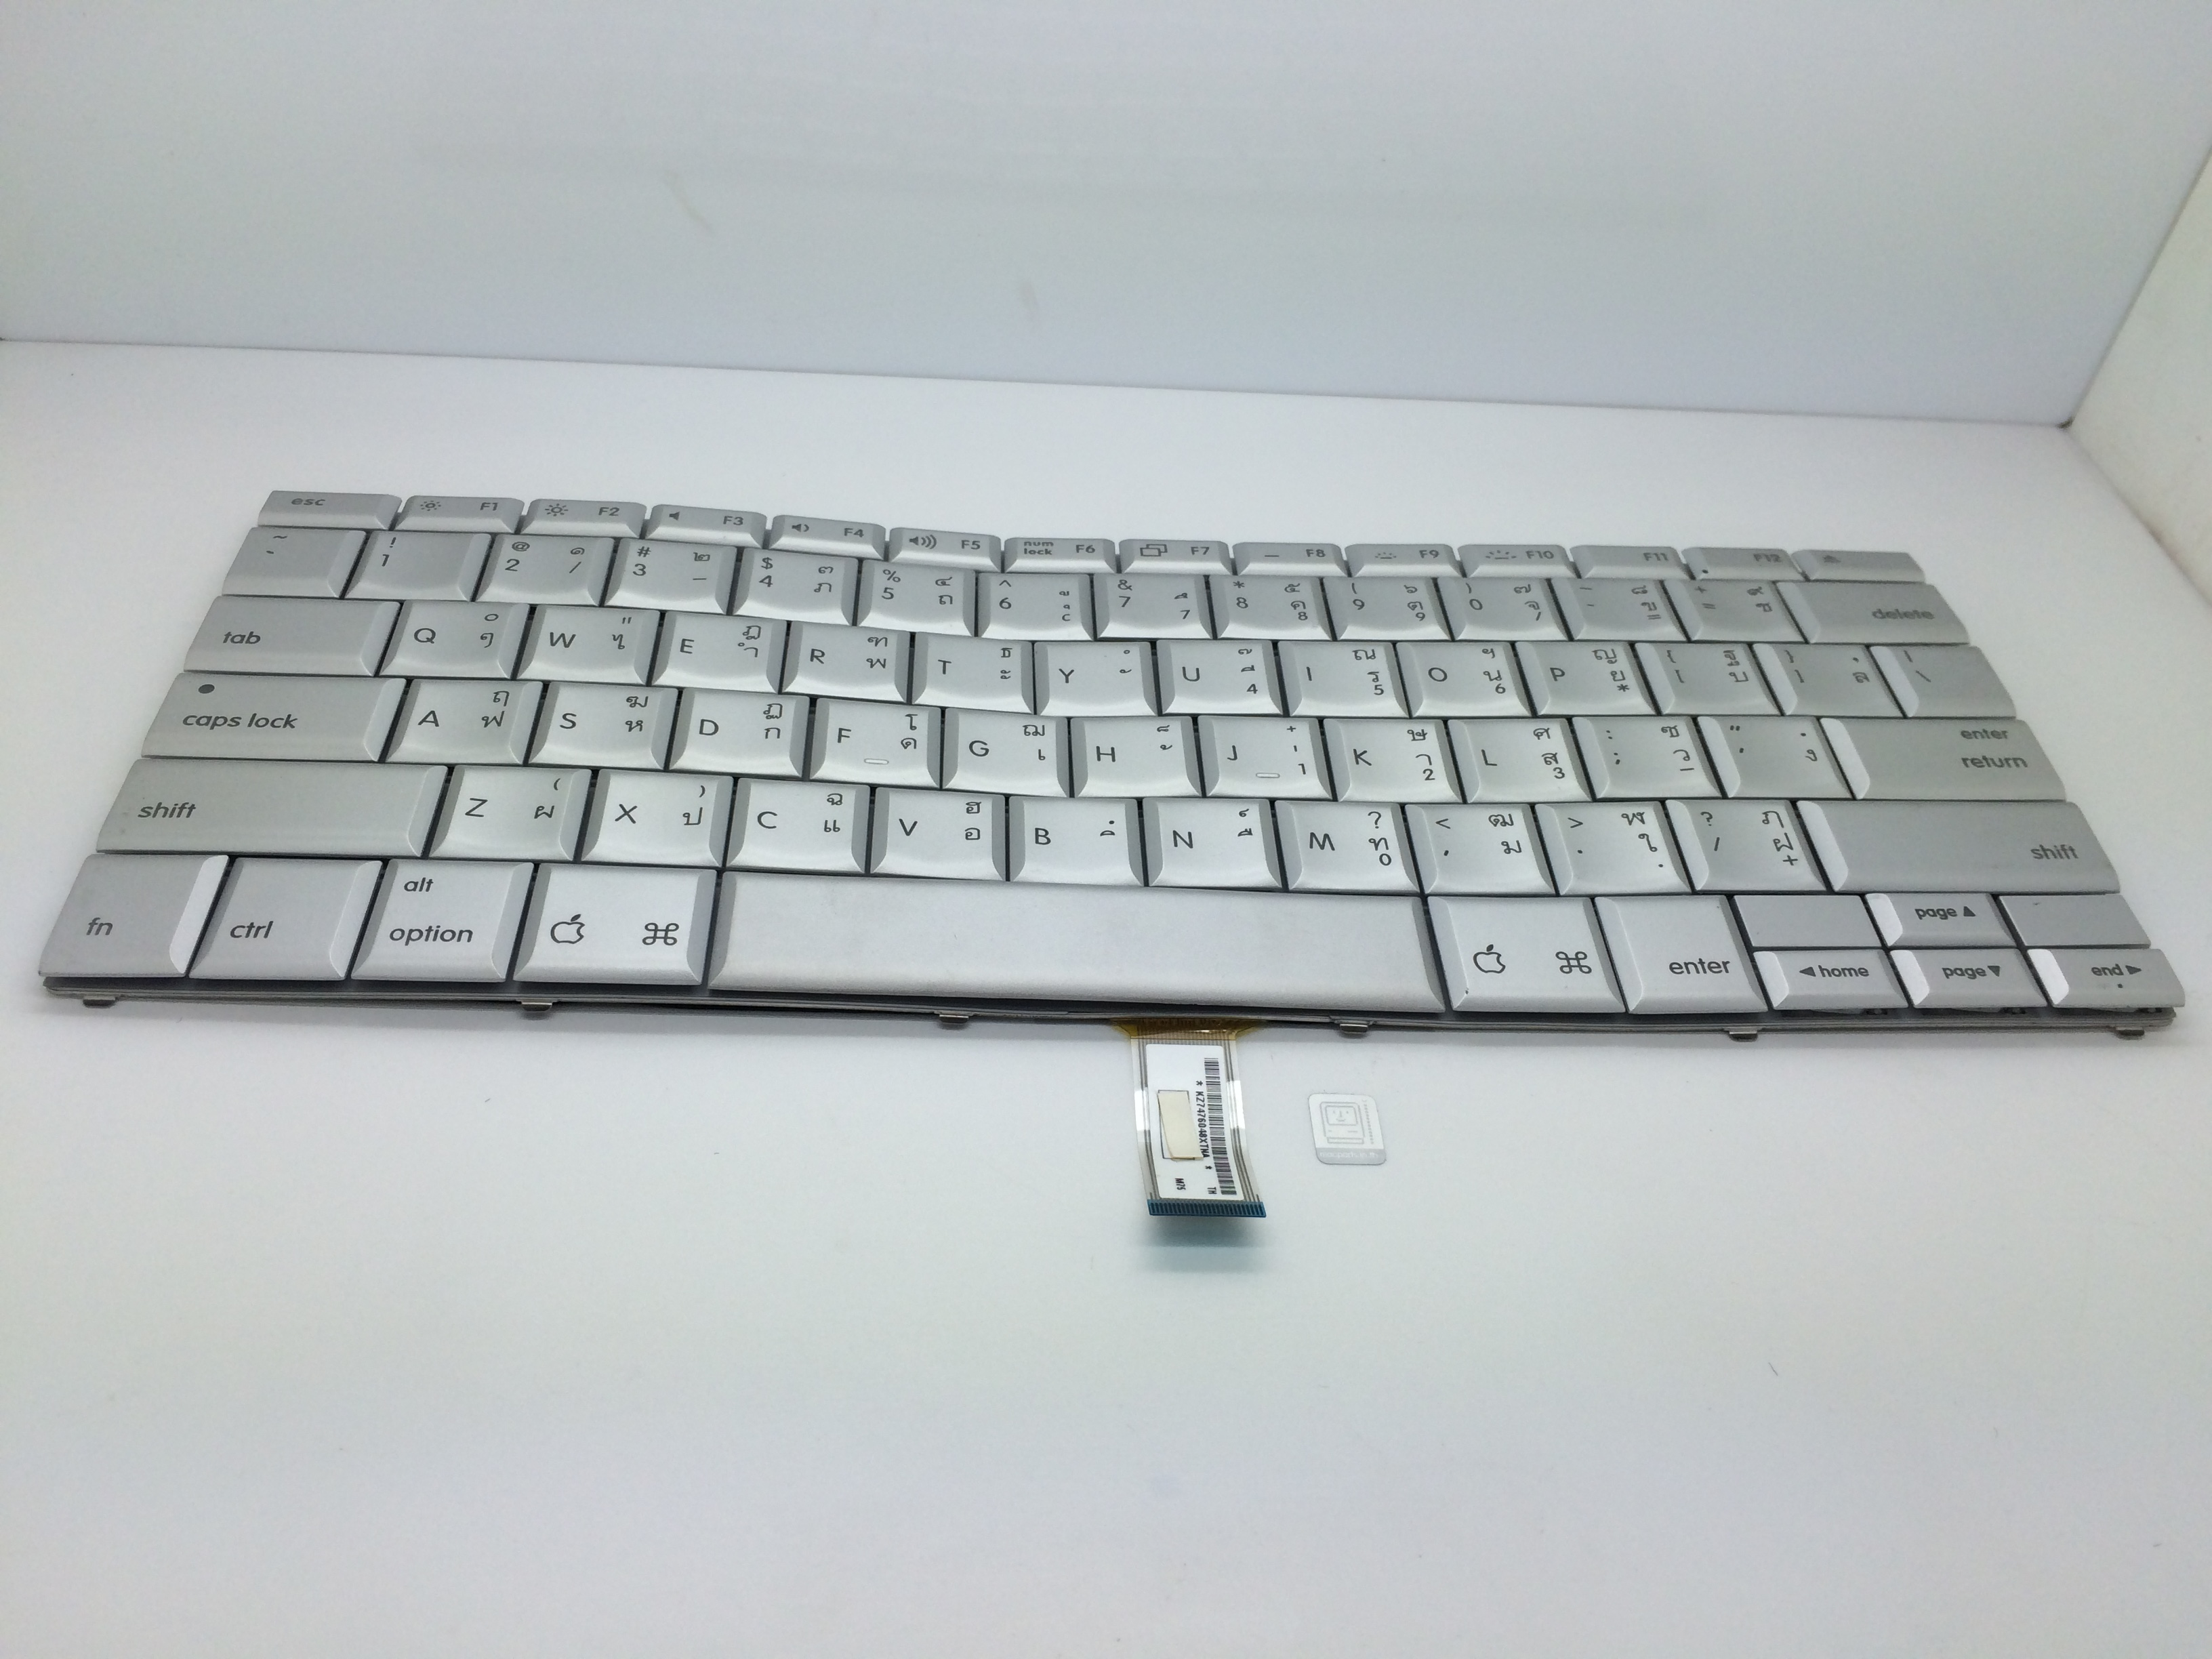 TH922-8350 Keyboard MacBok Pro Aluminium A1260 Core 2 Duo 2.4, 2.5 or 2.6 GHz (Model A1260) Fit For A1226 MAcBook Pro 2.2 GHz